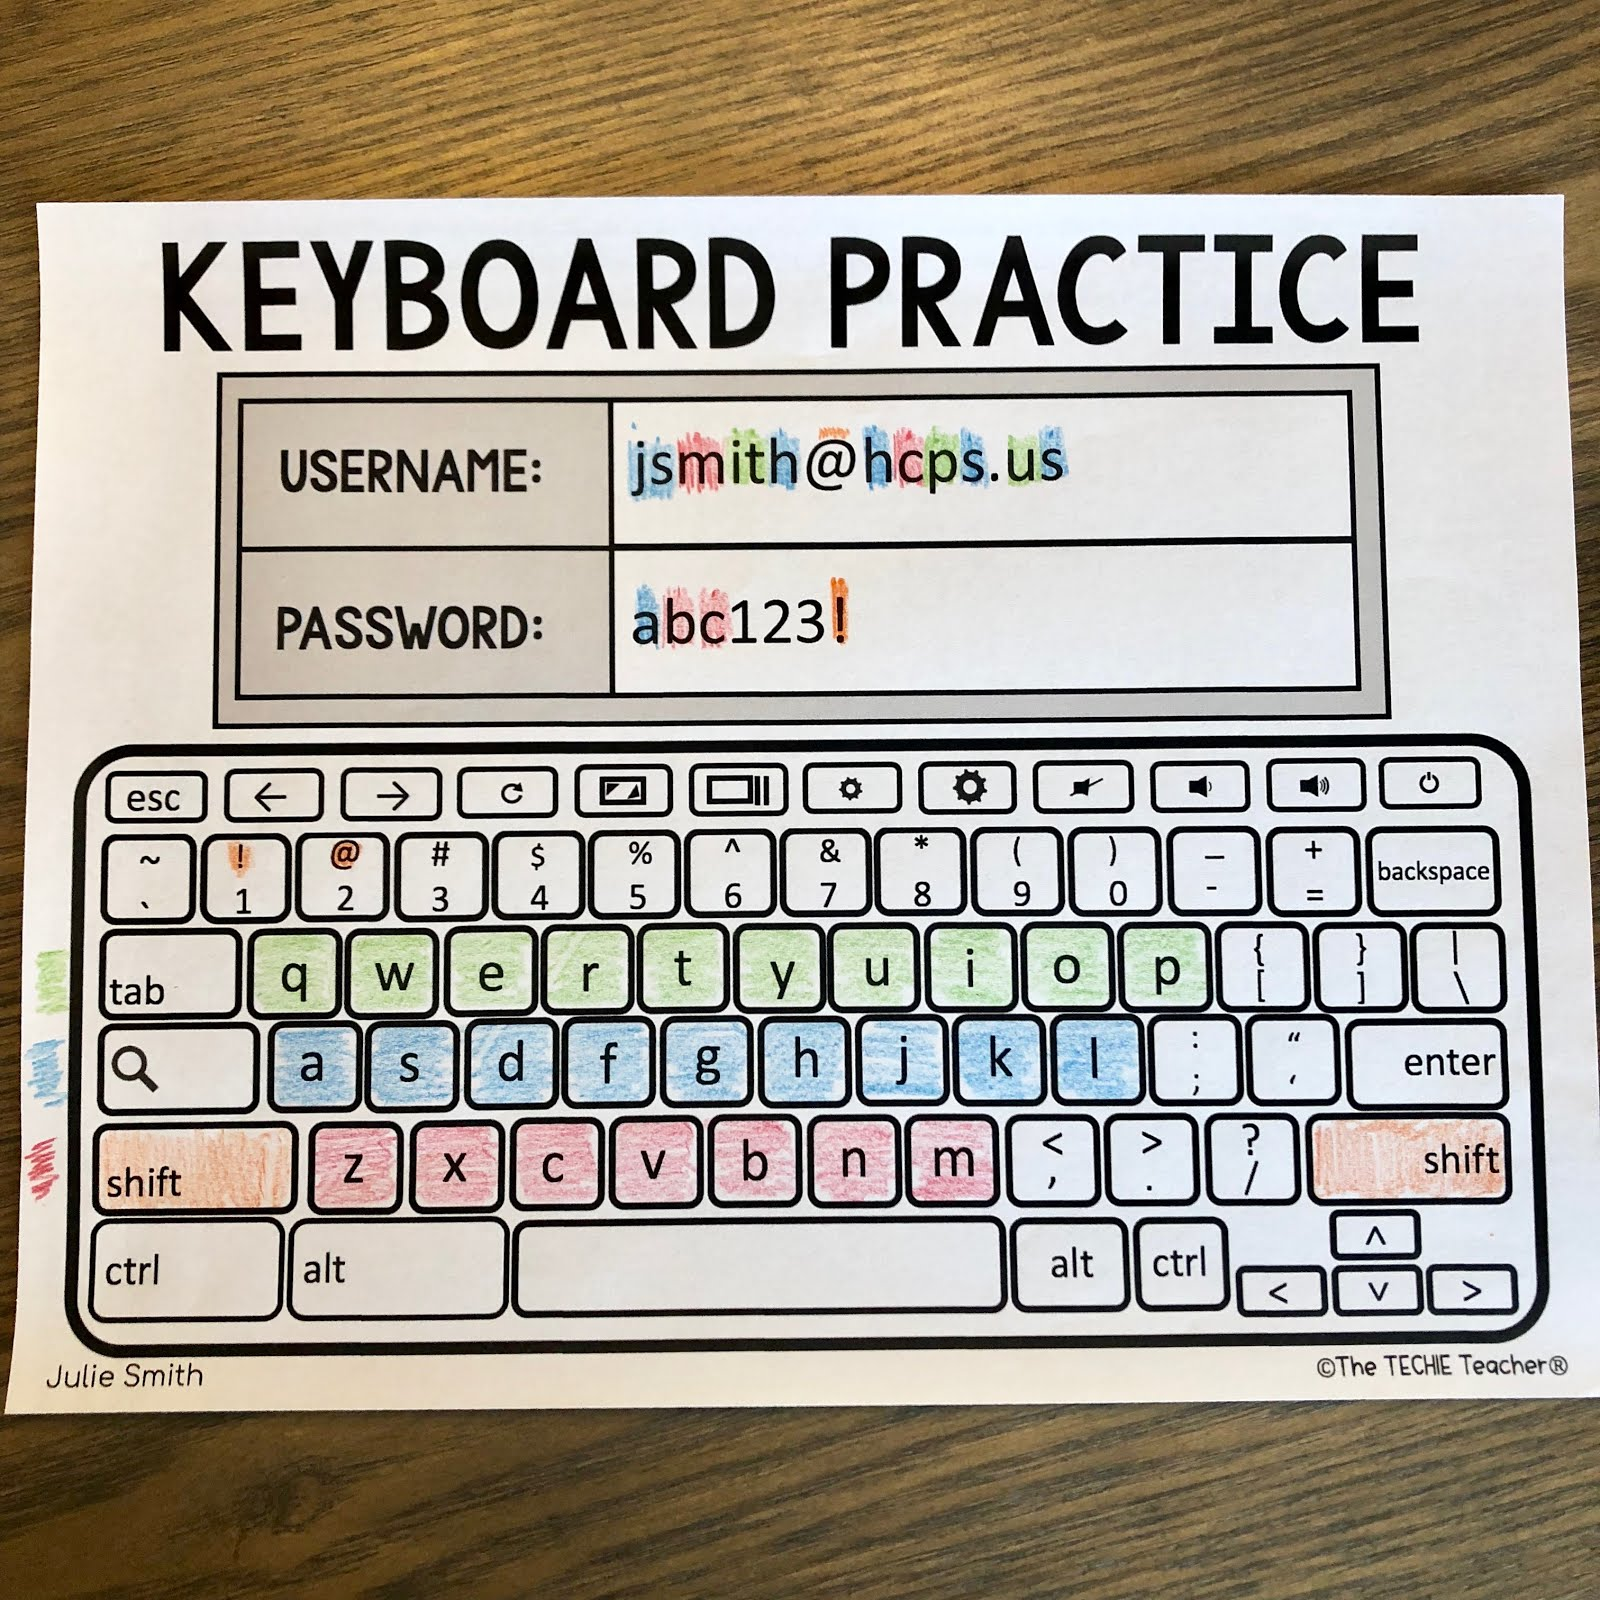 Chromebook Keyboard Printable Practice Sheets for students to practice logging in with their usernames and passwords.